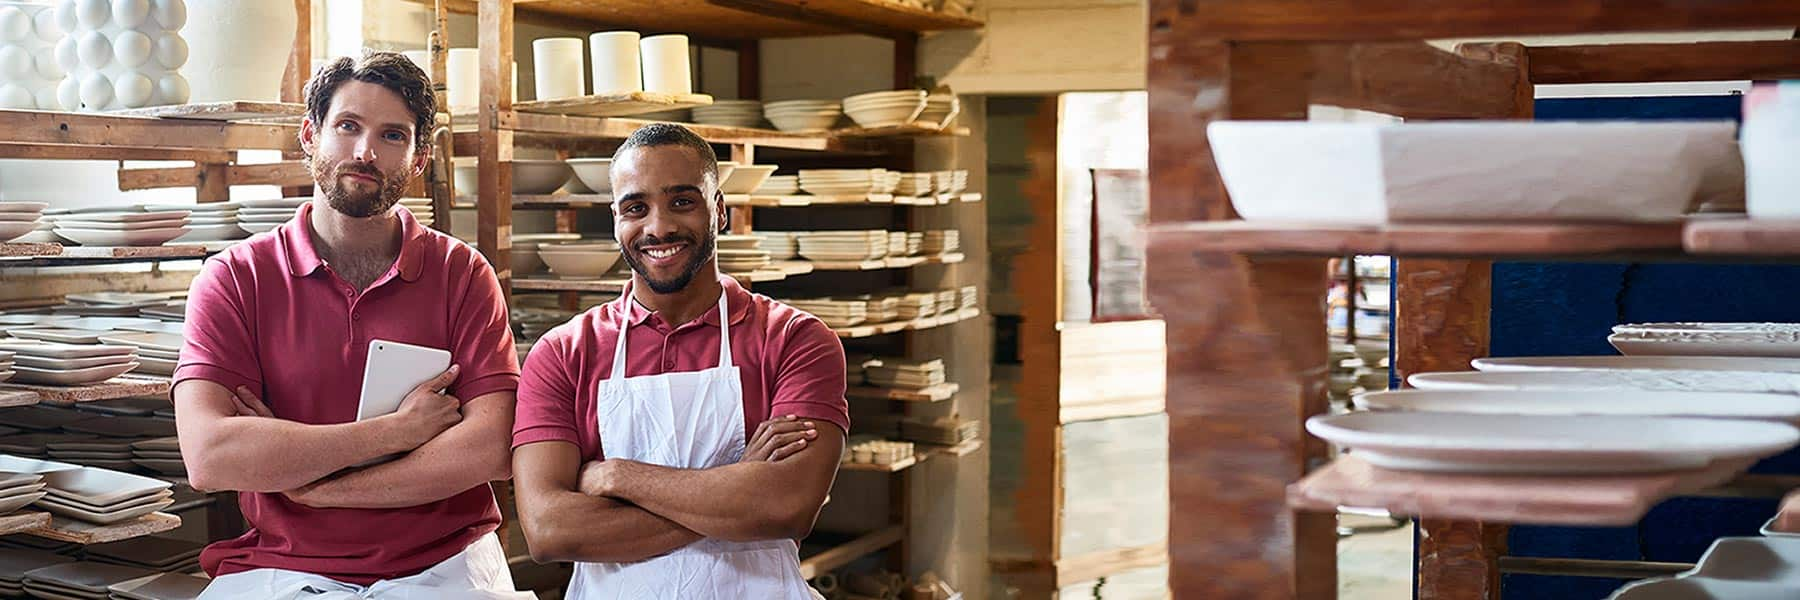 Two restaurant business partners in red shirts and white aprons smiling with folded arms in front of shelves of dishes